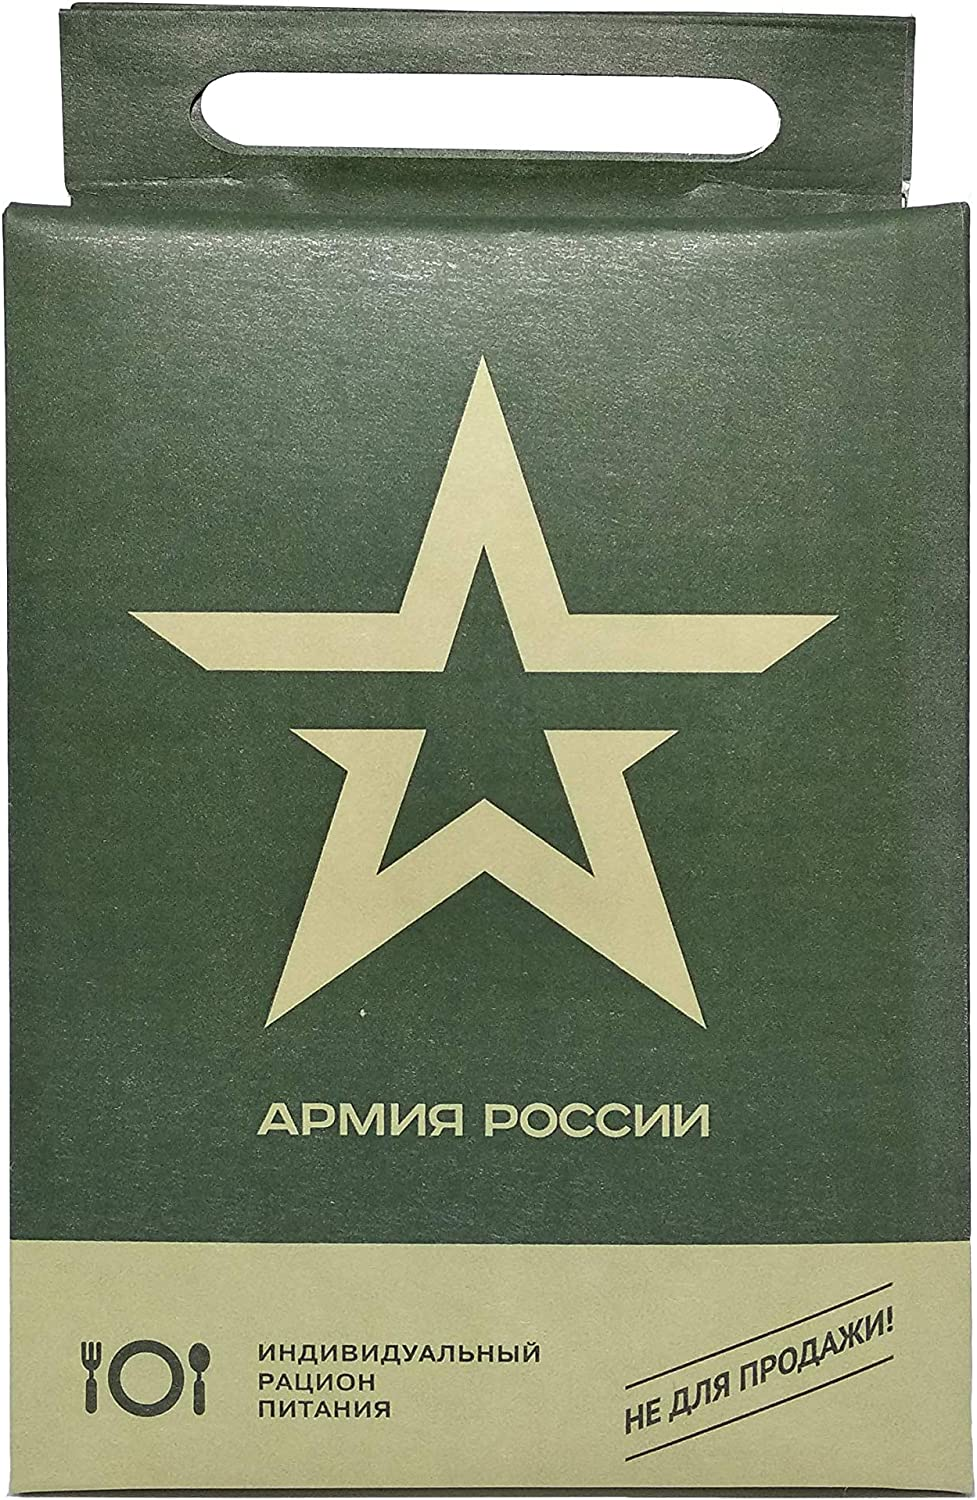 RUSSIAN ARMY DAILY RATION IRP MEAL NEW MILITARY MRE 2,1kg ~4790 kcal. EXP DATE - 07.2022